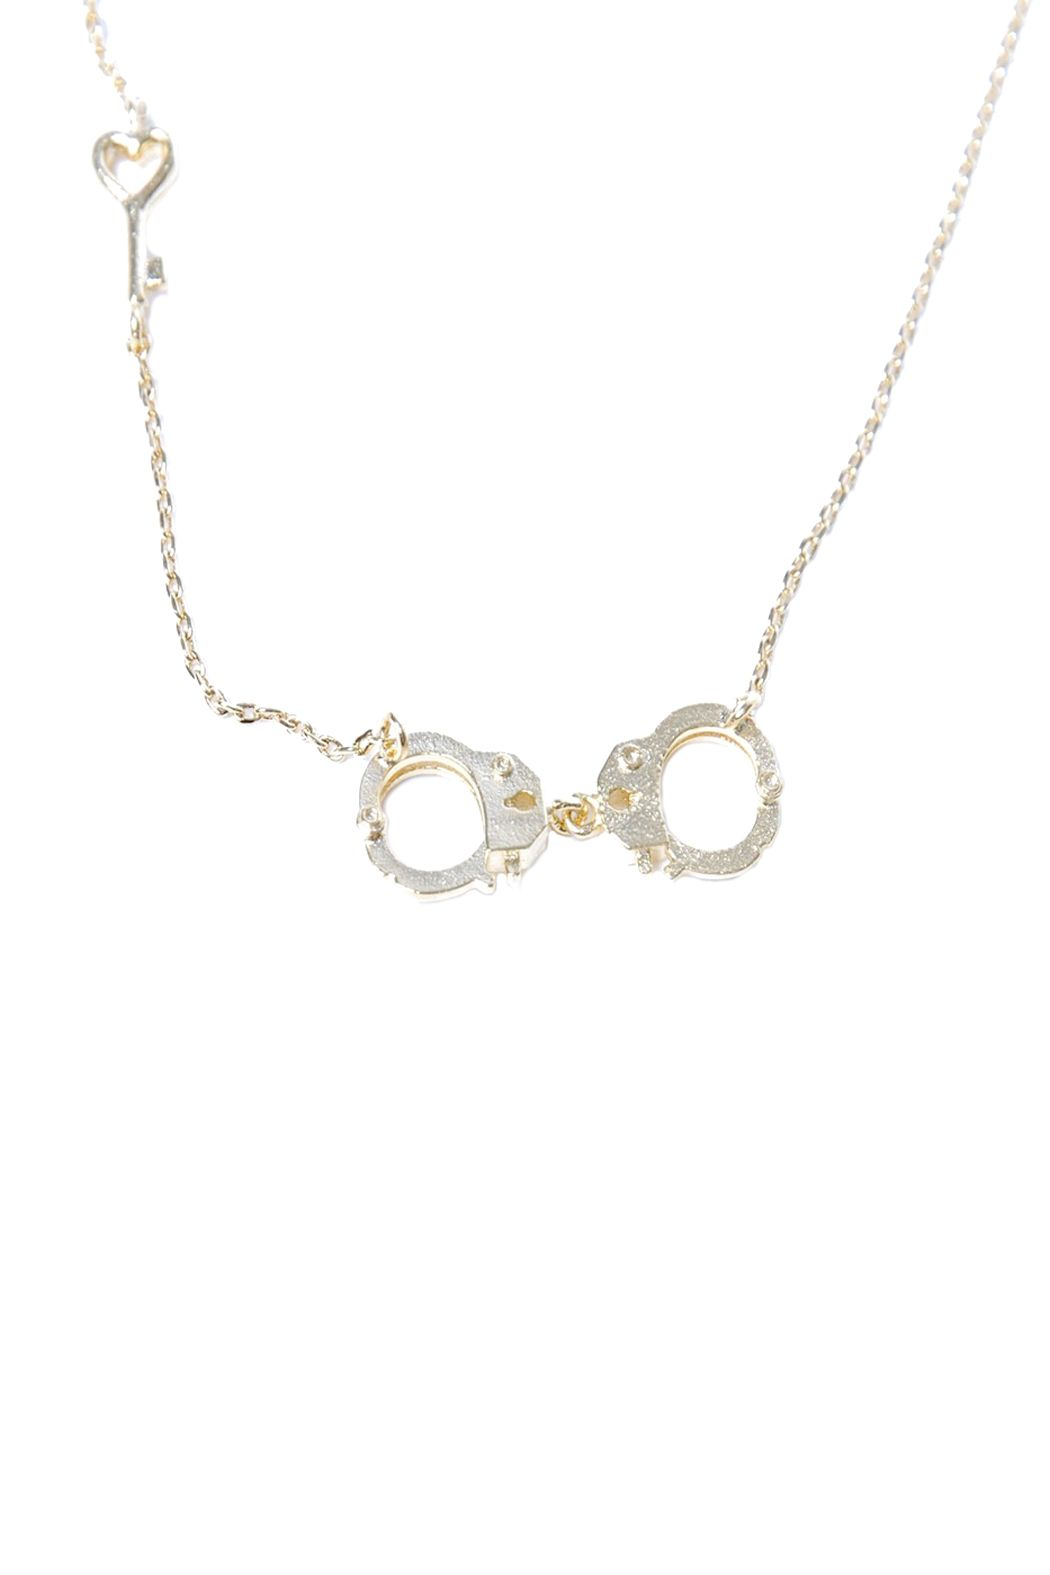 Green handcuff necklace handcuff necklace bling and jewel handcuff necklace aloadofball Image collections